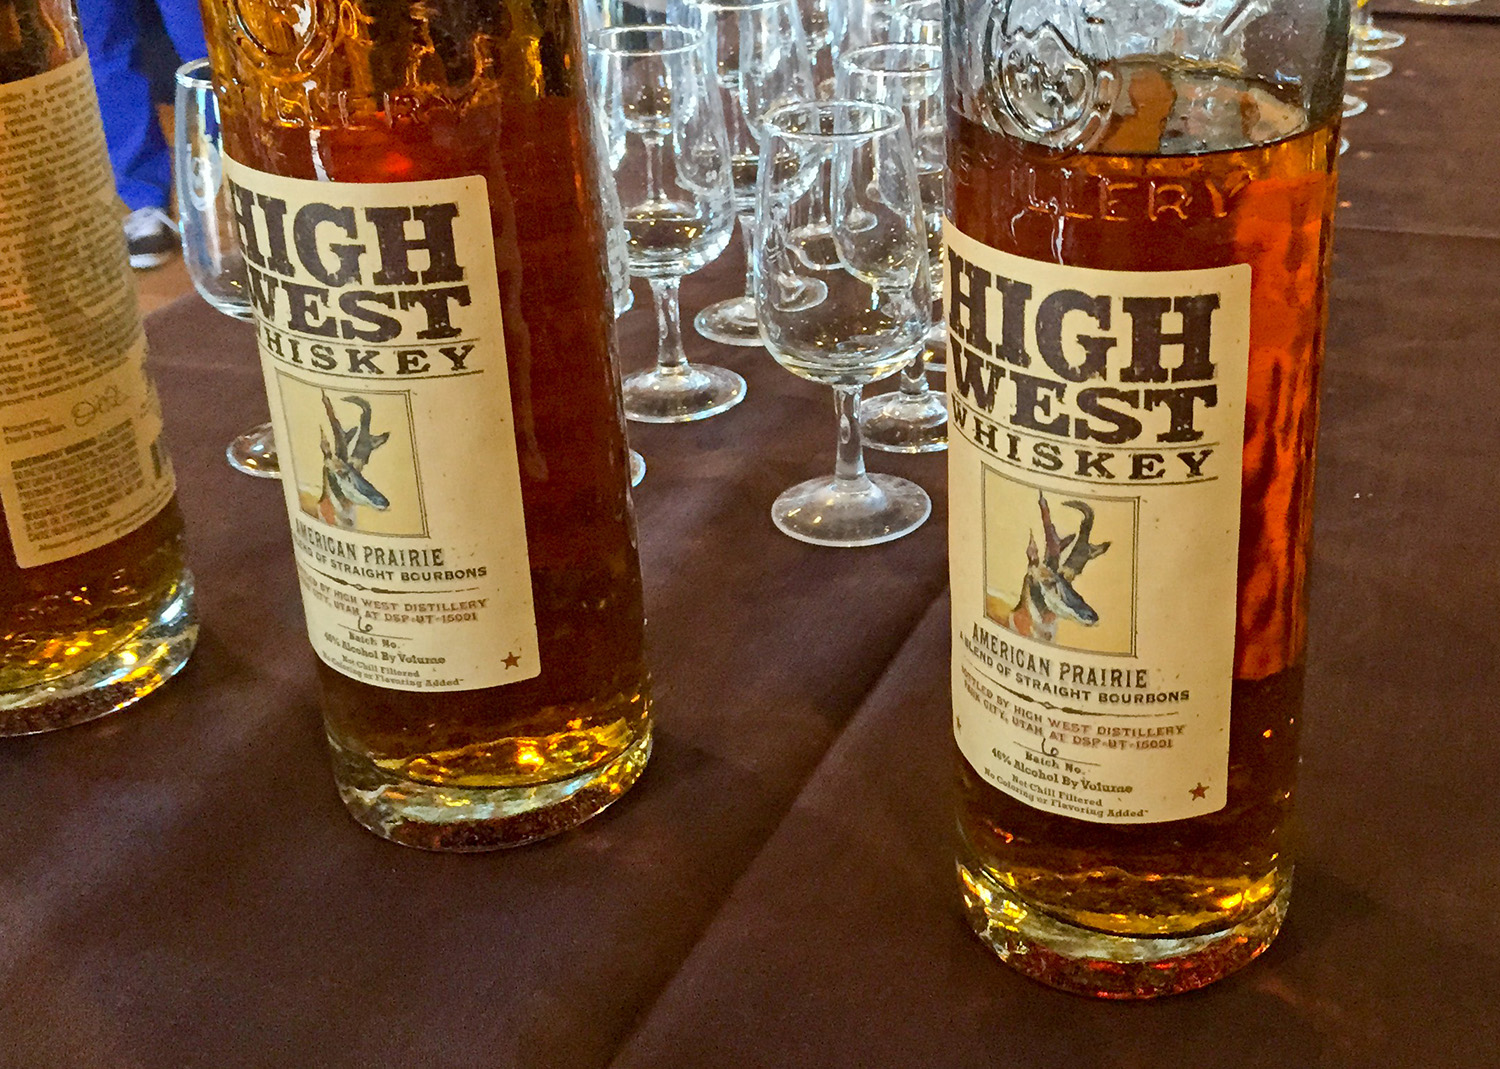 High West Whiskey American Prairie, a bourbon whiskey.